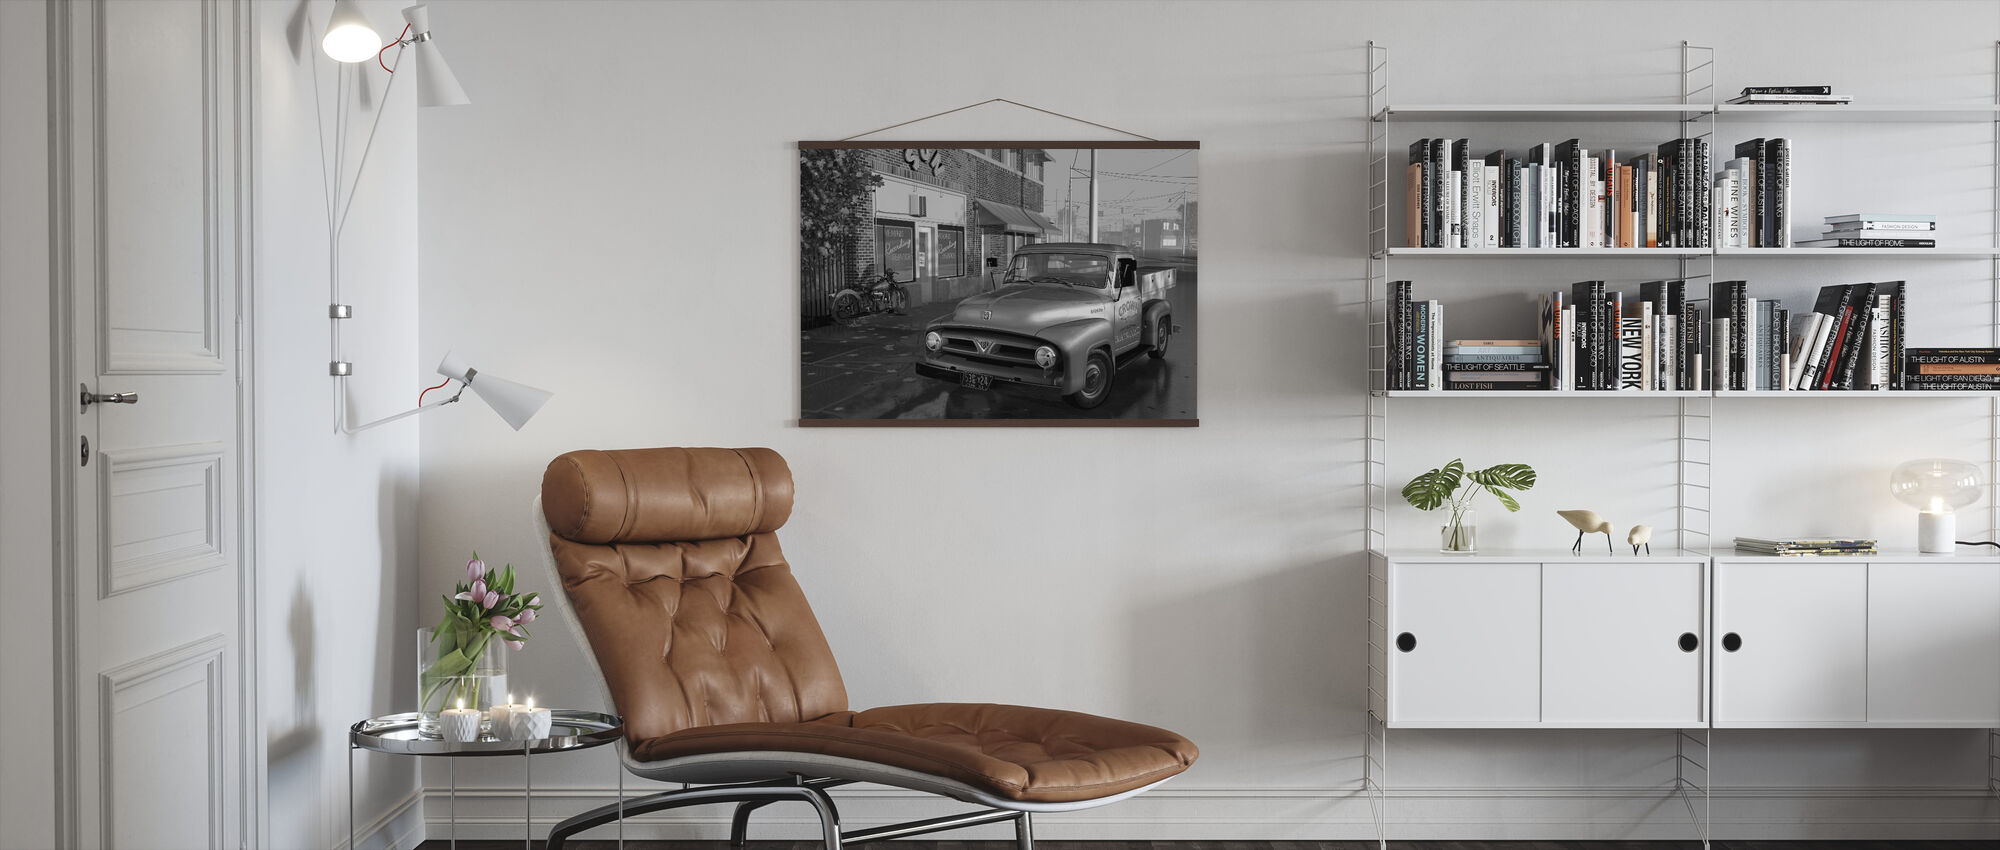 Truck BW - Poster - Living Room